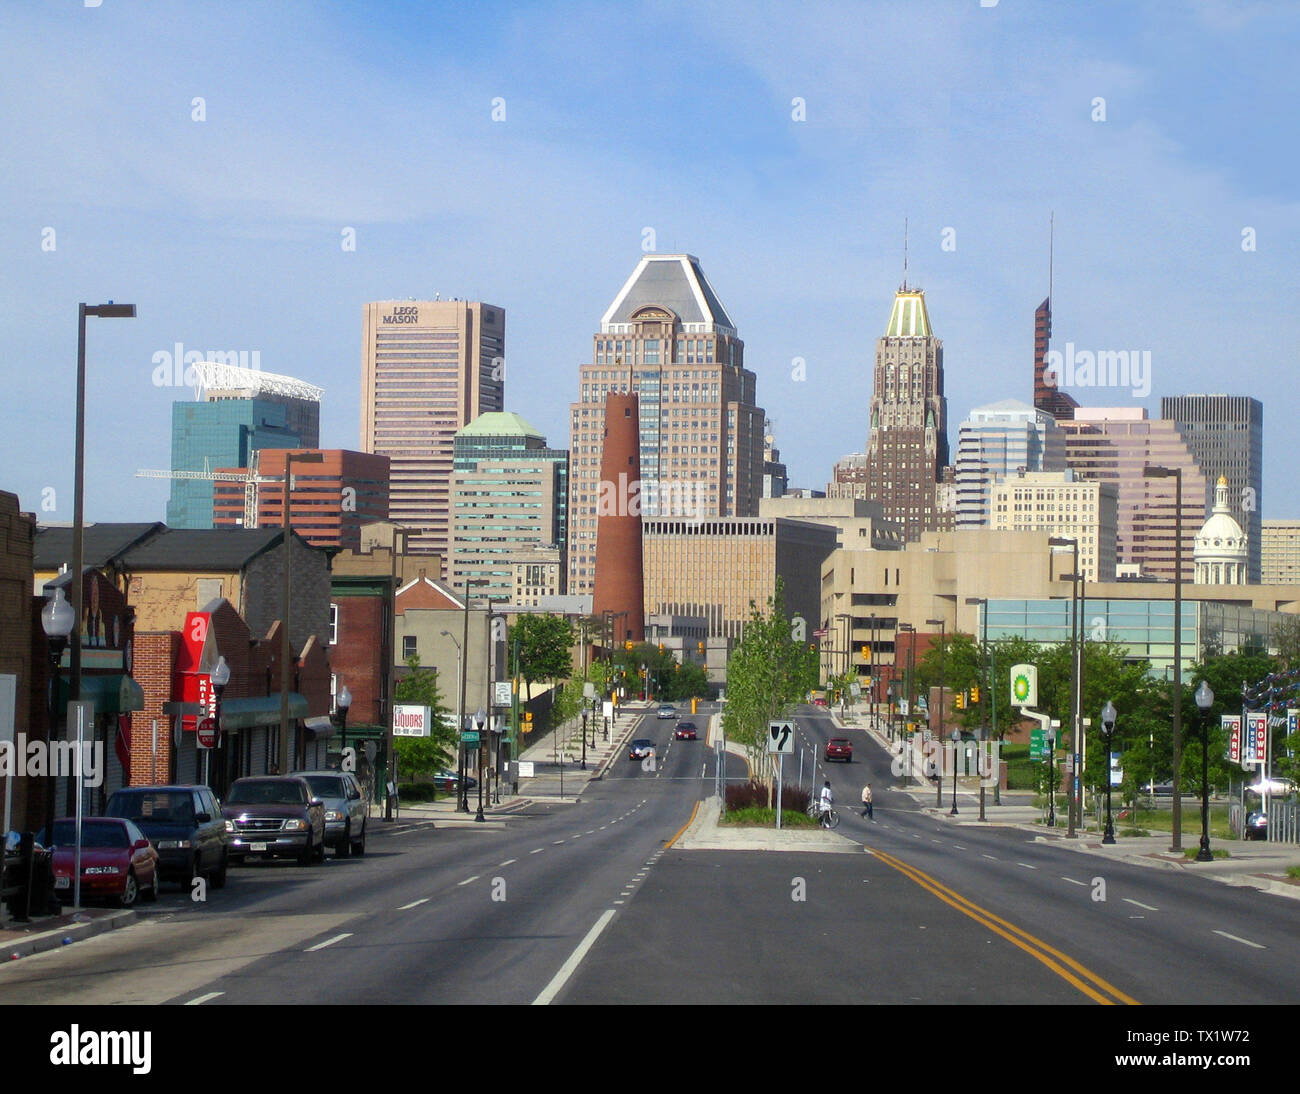 'Boarisch: Baltimore, de gresste Stod vo Maryland. Deutsch: Baltimore, die größte Stadt Marylands. Ελληνικά: Οι ουρανοξύστες στο κέντρο της Βαλτιμόρης. English: A view of Downtown Baltimore from the East, on Fayette St. The intersection in the distance is where Fayette St. crosses President St., which becomes the Jones Falls Expressway on the opposite side of the intersection. Français: Panorama contemporain de la ville de Baltimore. Le Downtown de Baltimore vu en direction de l'ouest sur la rue Fayette. עברית: מרכז בולטימור. Interlingue: Li centre de Baltimore. Македонски: Центарот во Балтим - Stock Image